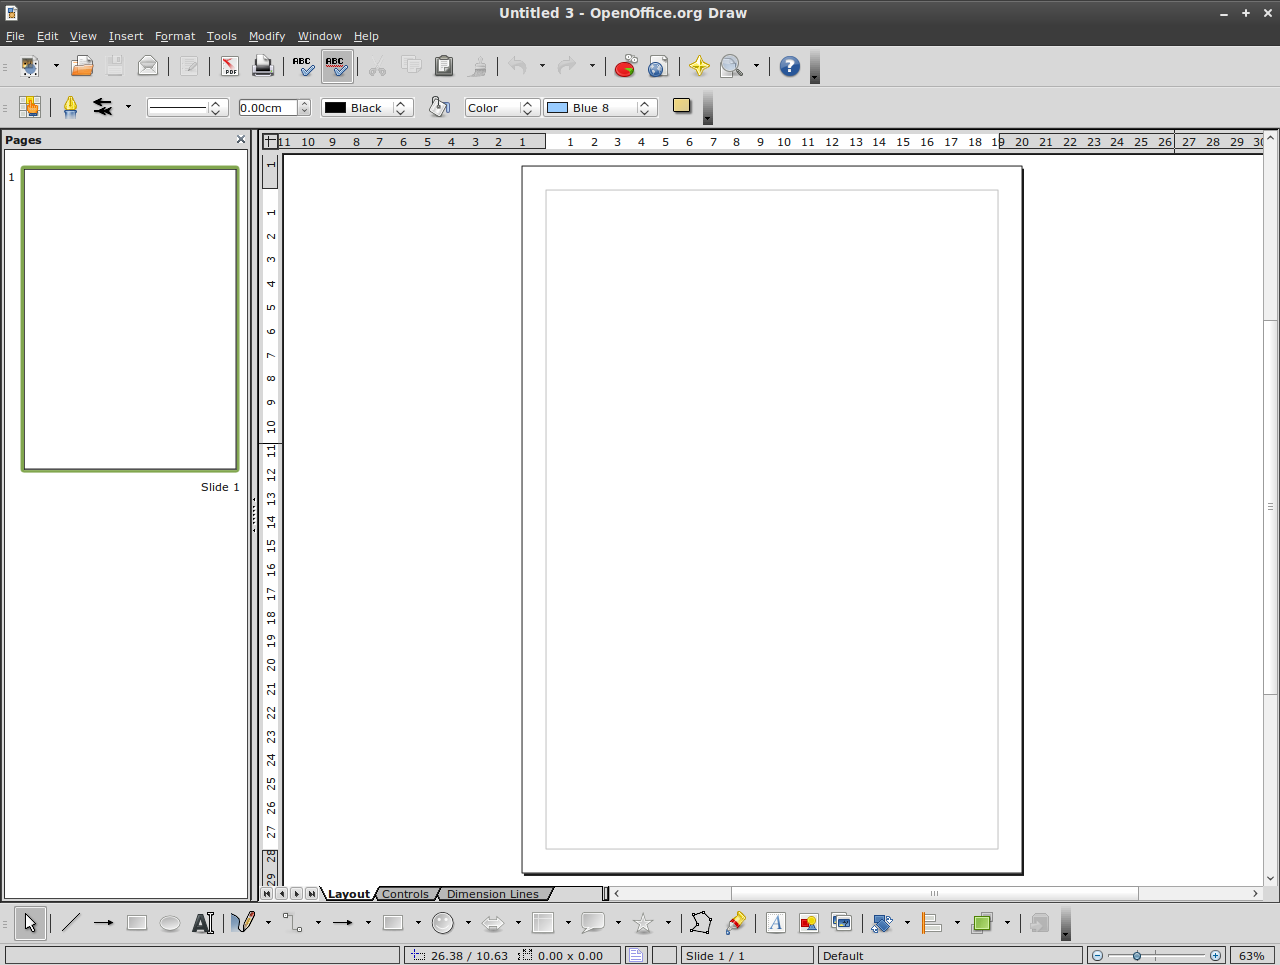 openoffice.org-draw - Linux Mint Community